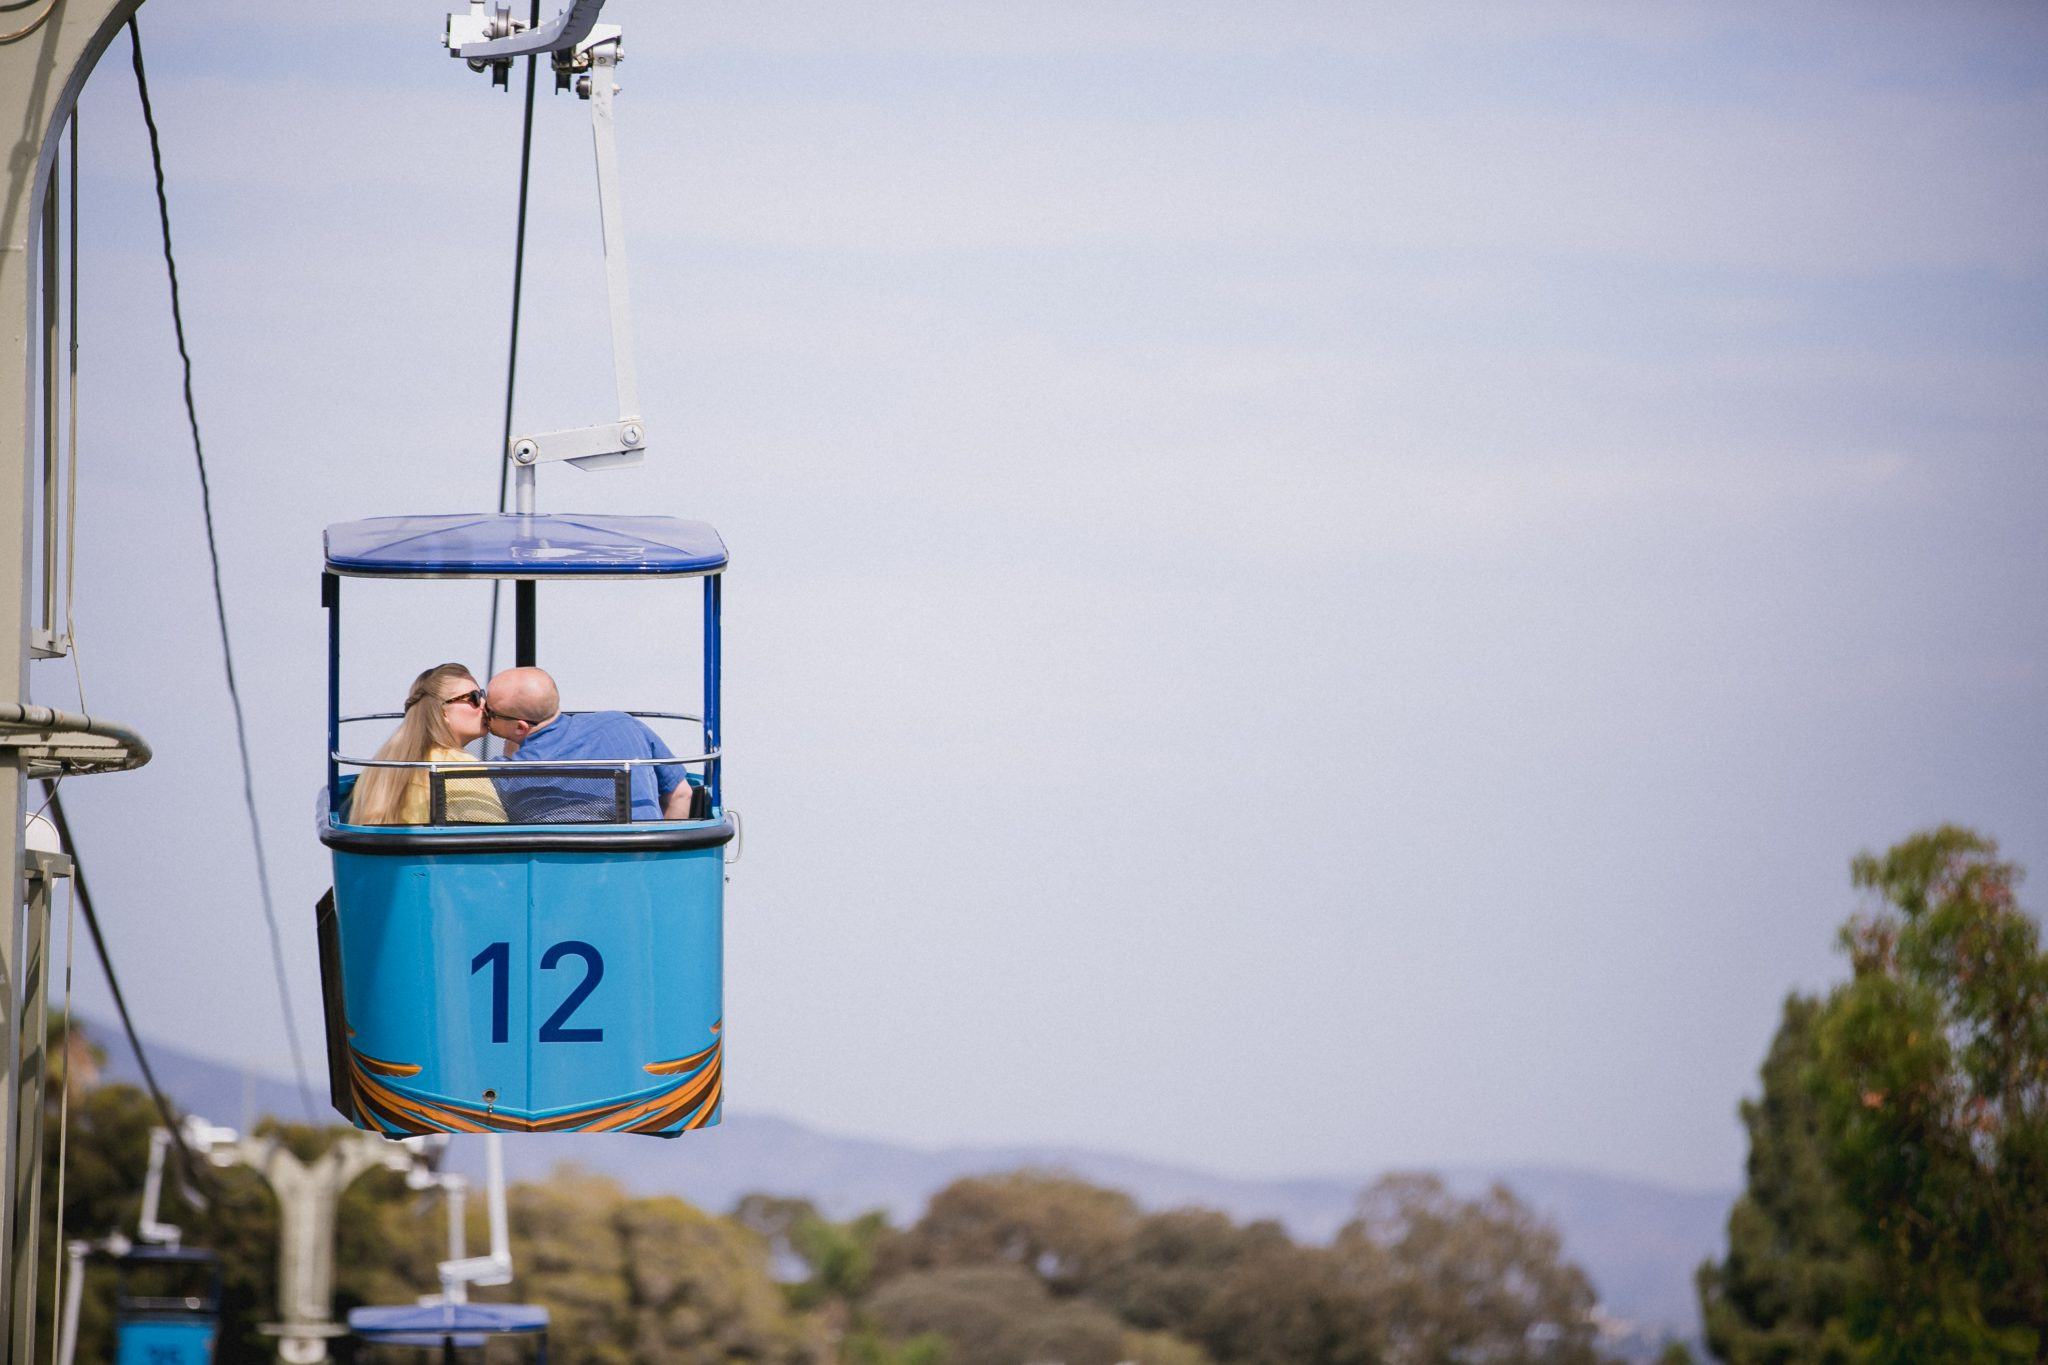 Zoo engagement photos in the aerial tram in San Diego